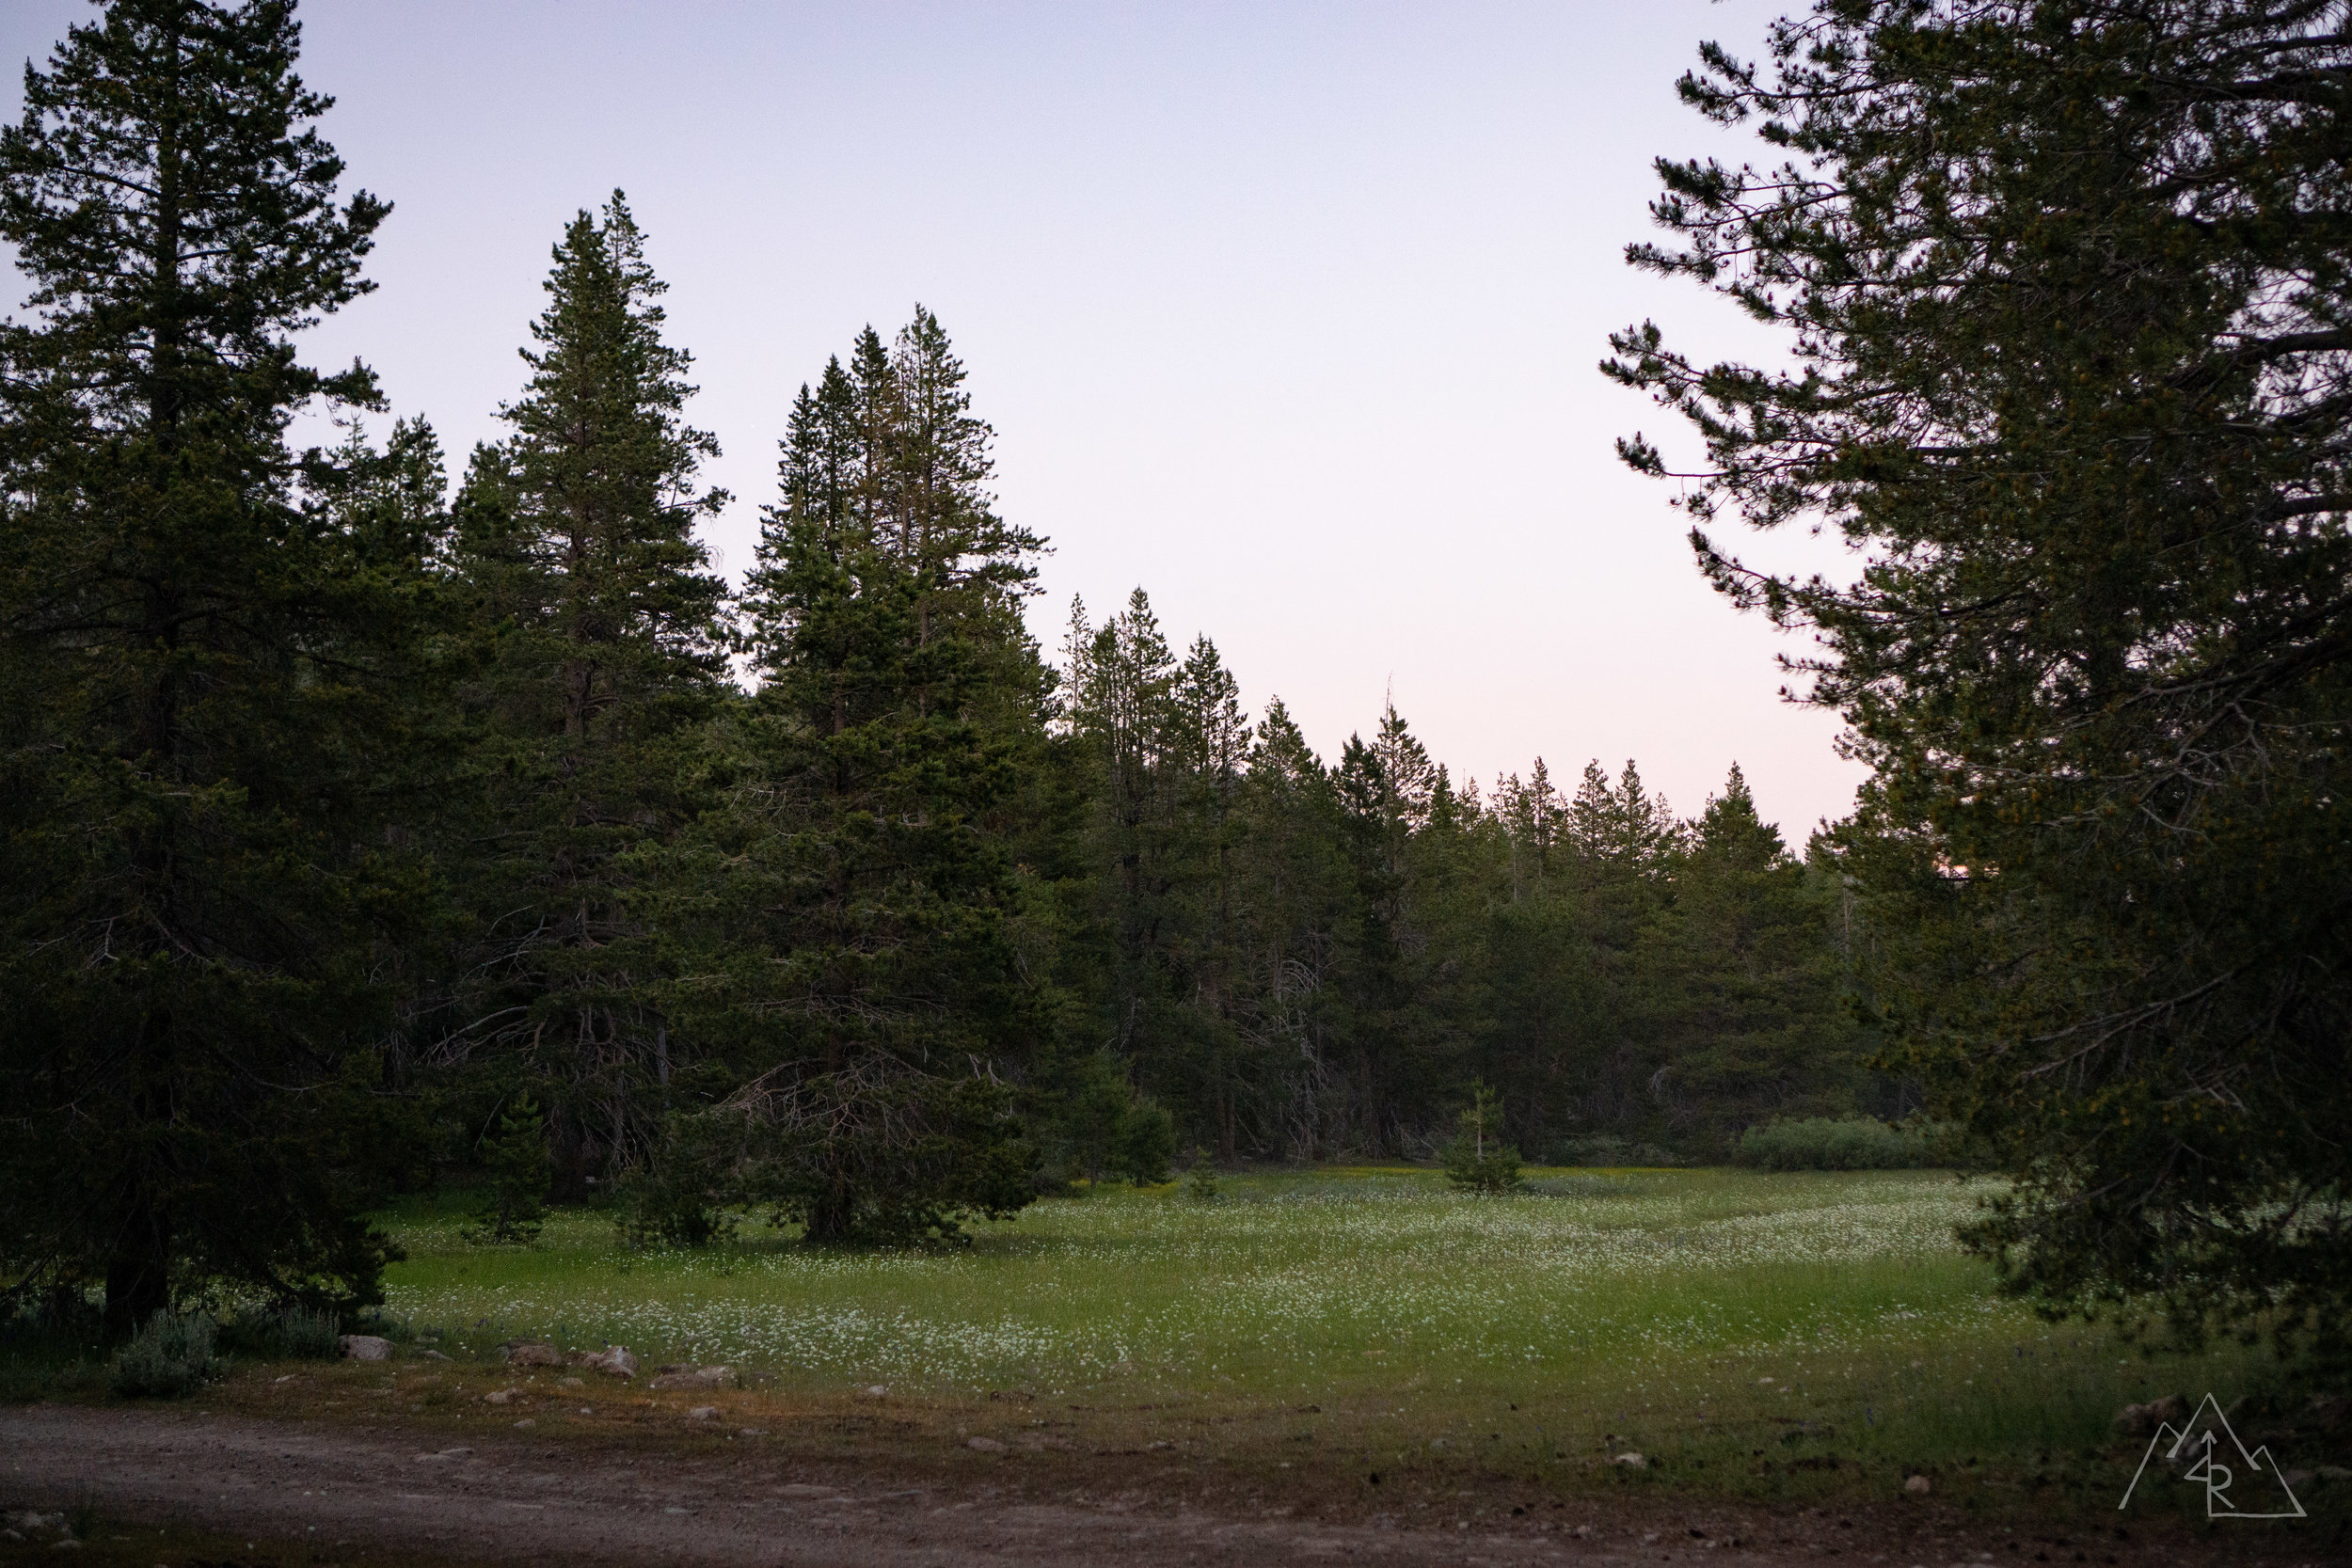 MosquitoCamping_072019-65.jpg